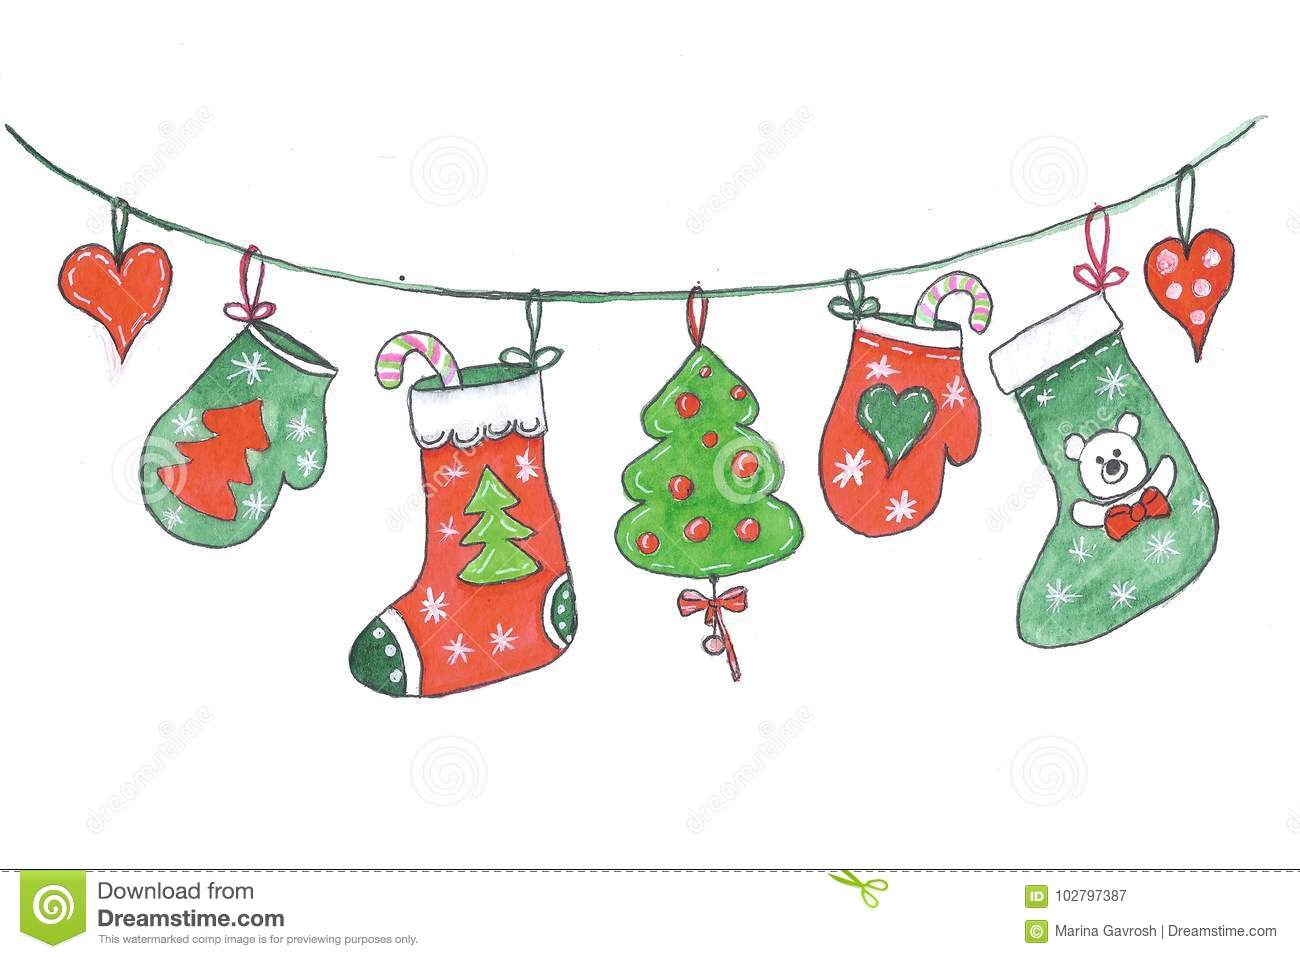 merry christmas decorations hanging on a rope drawing in watercolor - Merry Christmas Decorations